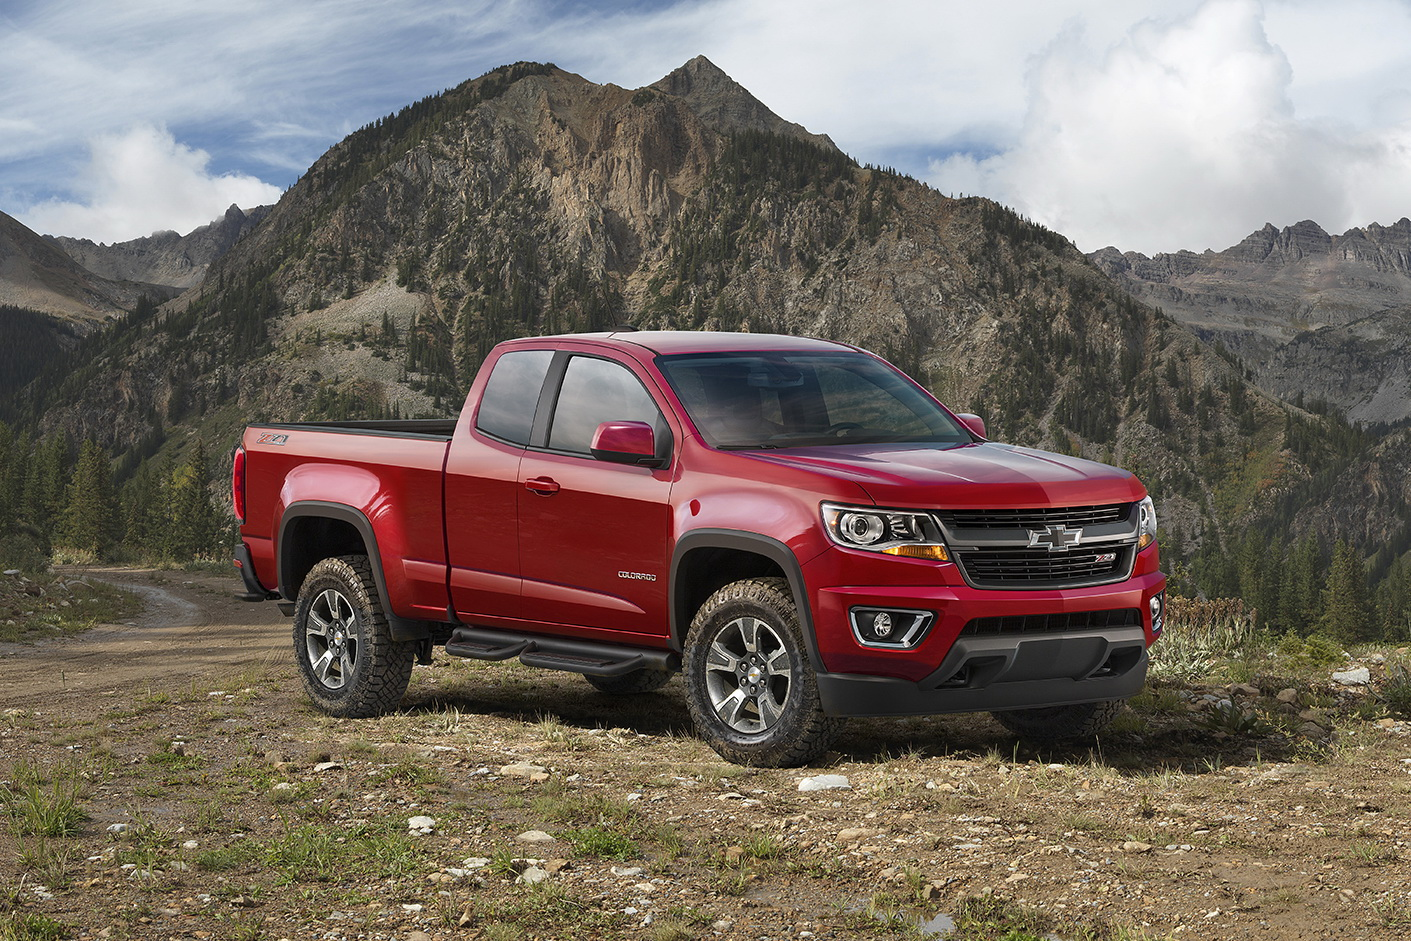 Colorado chevy 2015 colorado : Chevy Styles Up 2015 Colorado With New Z71 Trail Boss Edition ...